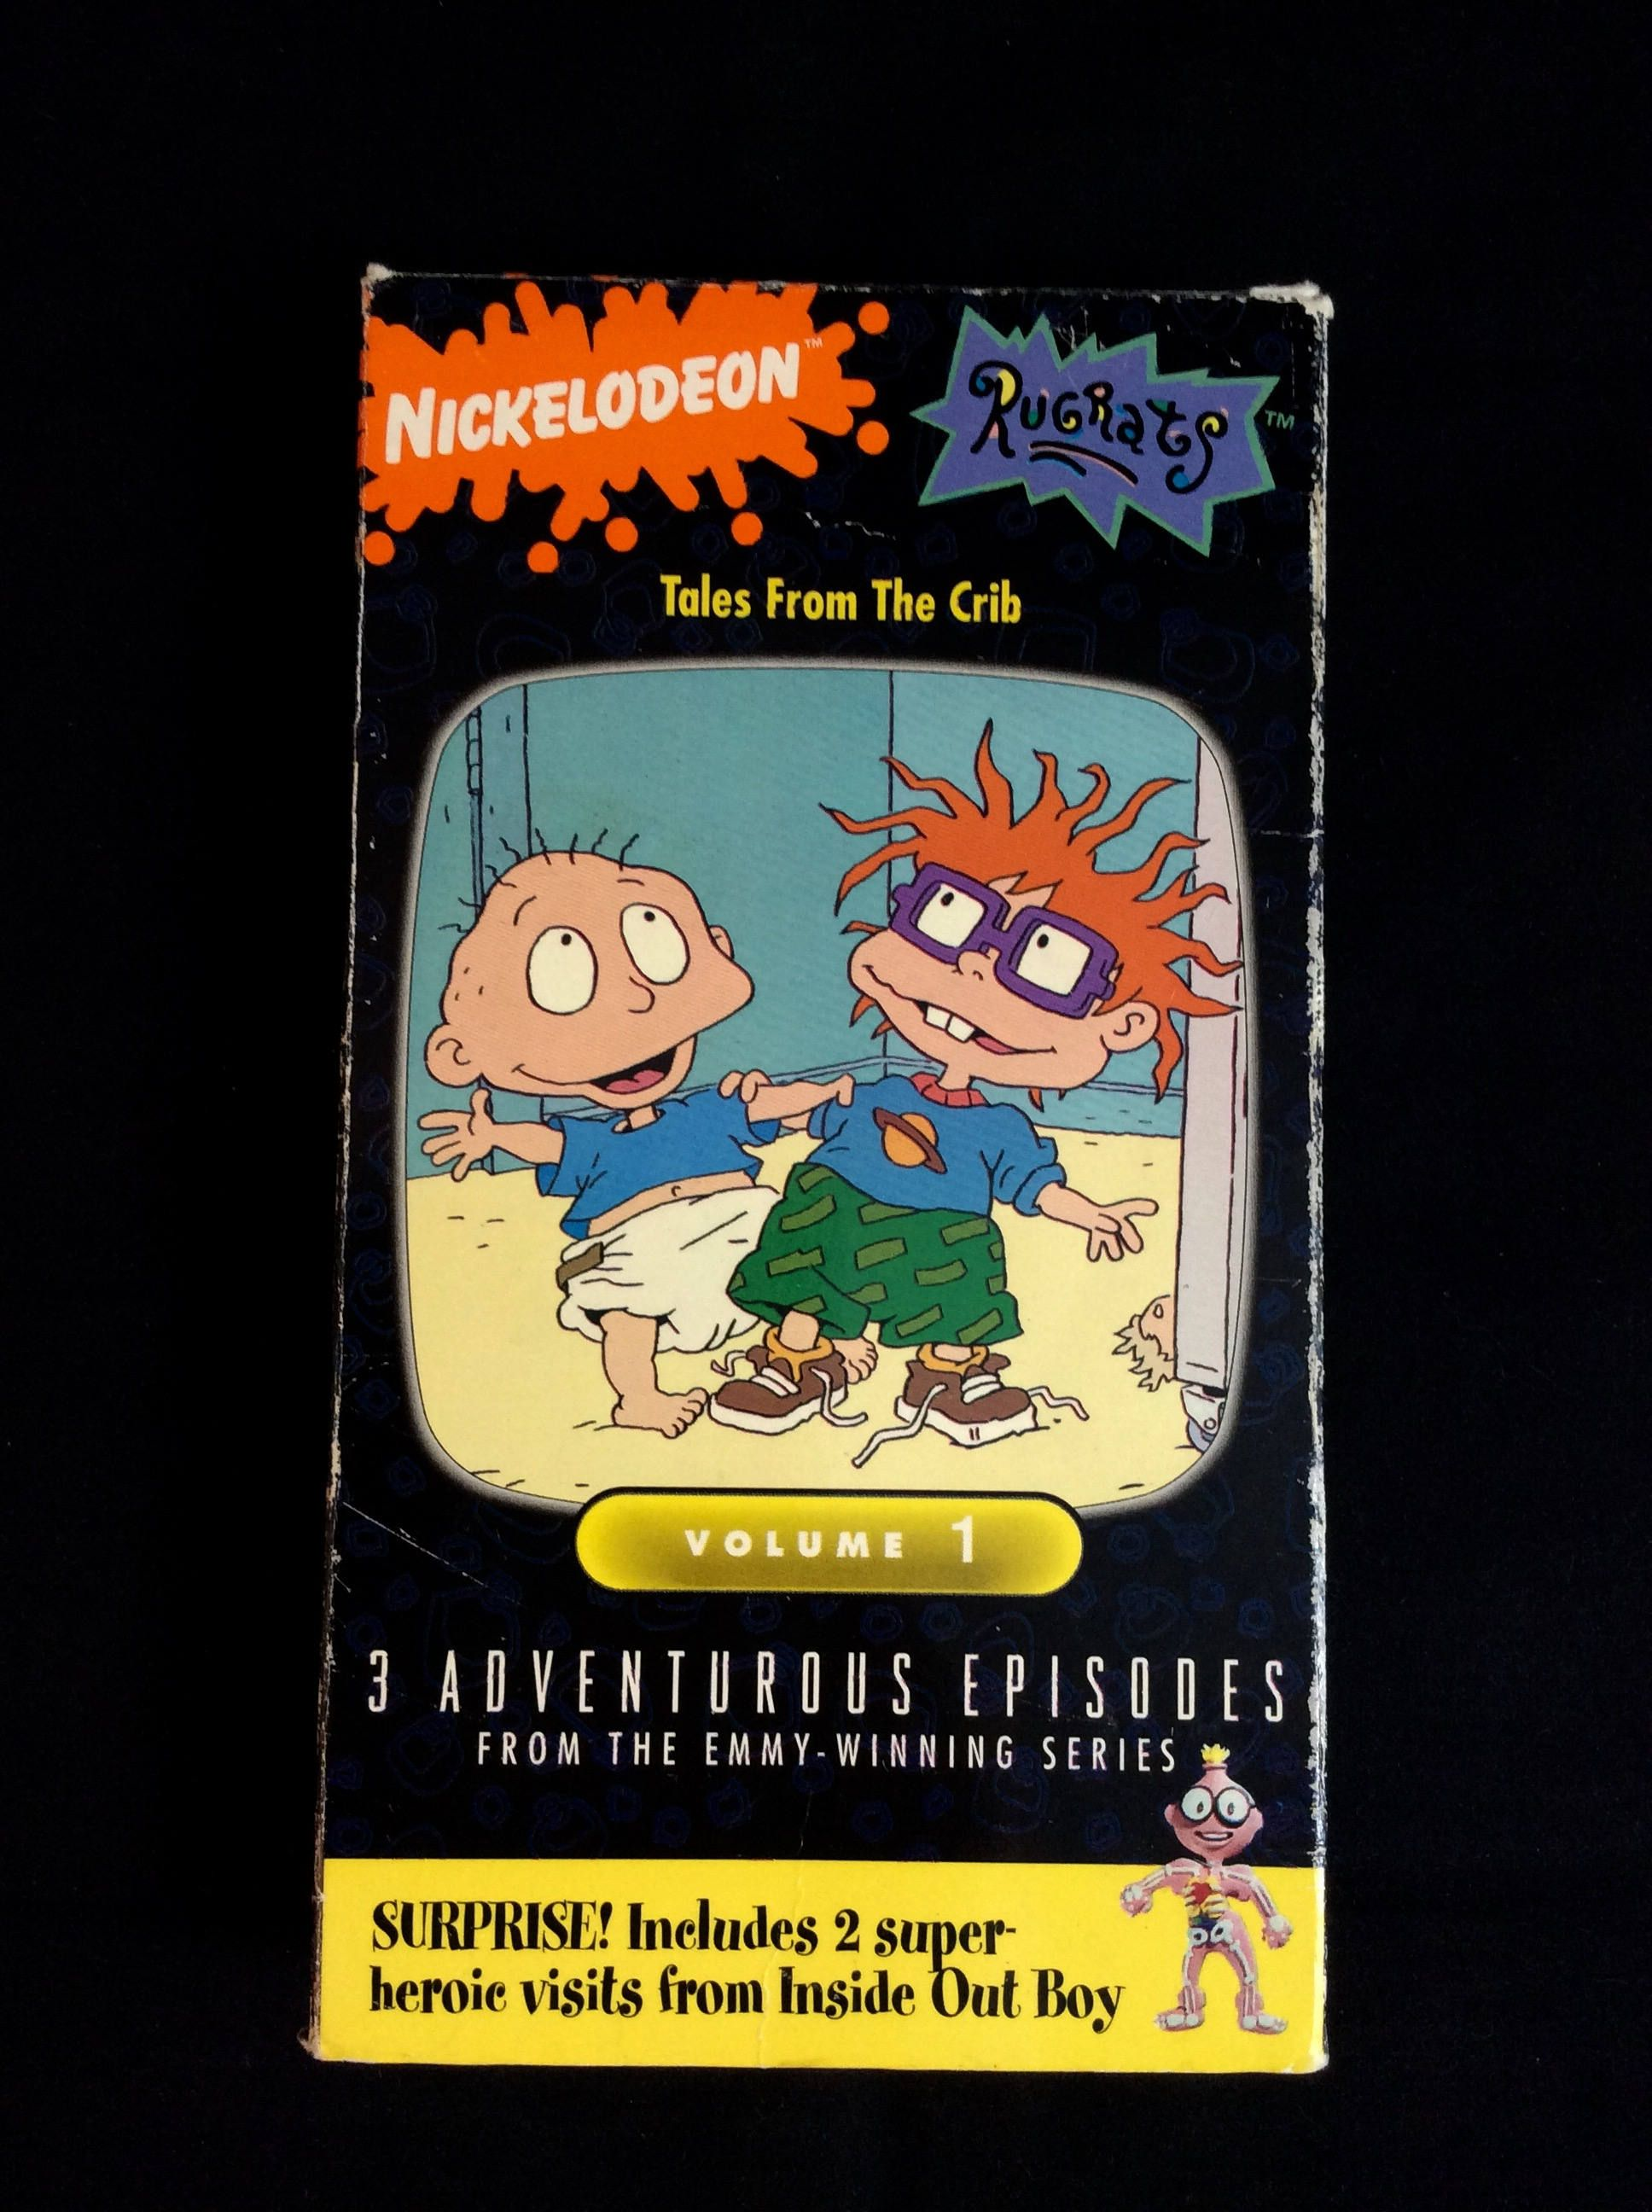 Rugrats Tales From The Crib Volume 1 1993 Nickelodeon Orange Vhs Tape 90s Cartoons By Thetimetravelingpug On Etsy